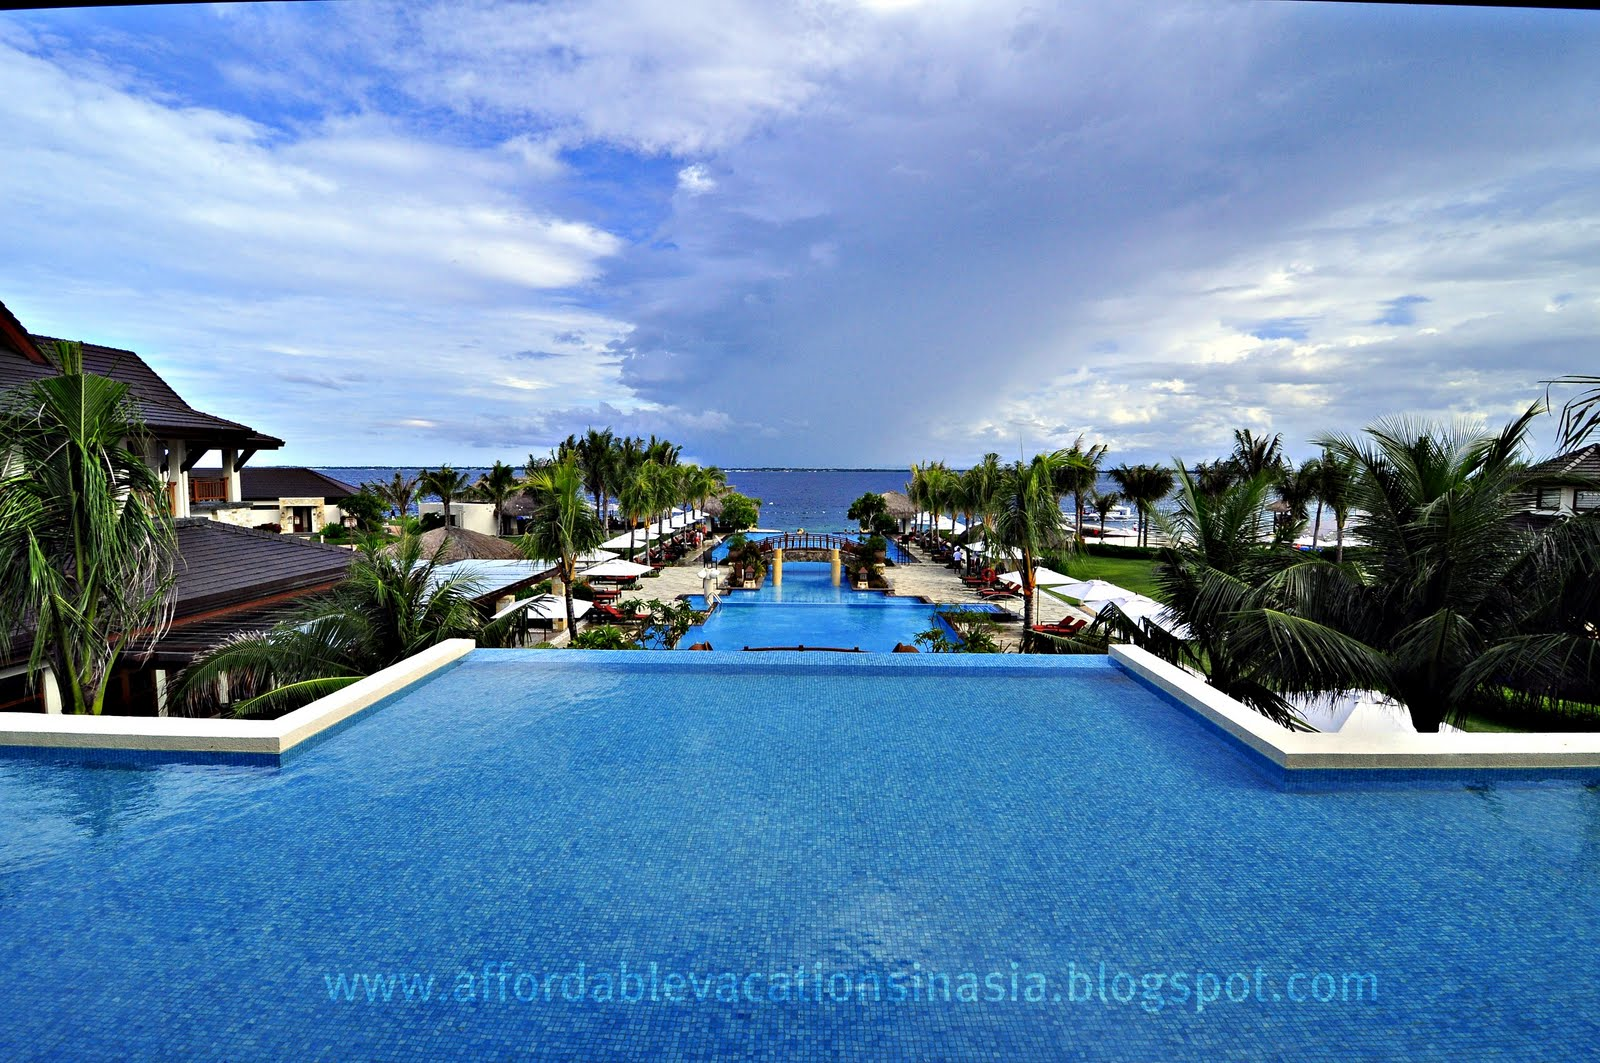 Affordable Vacations In Asia The Philippines Cebu S